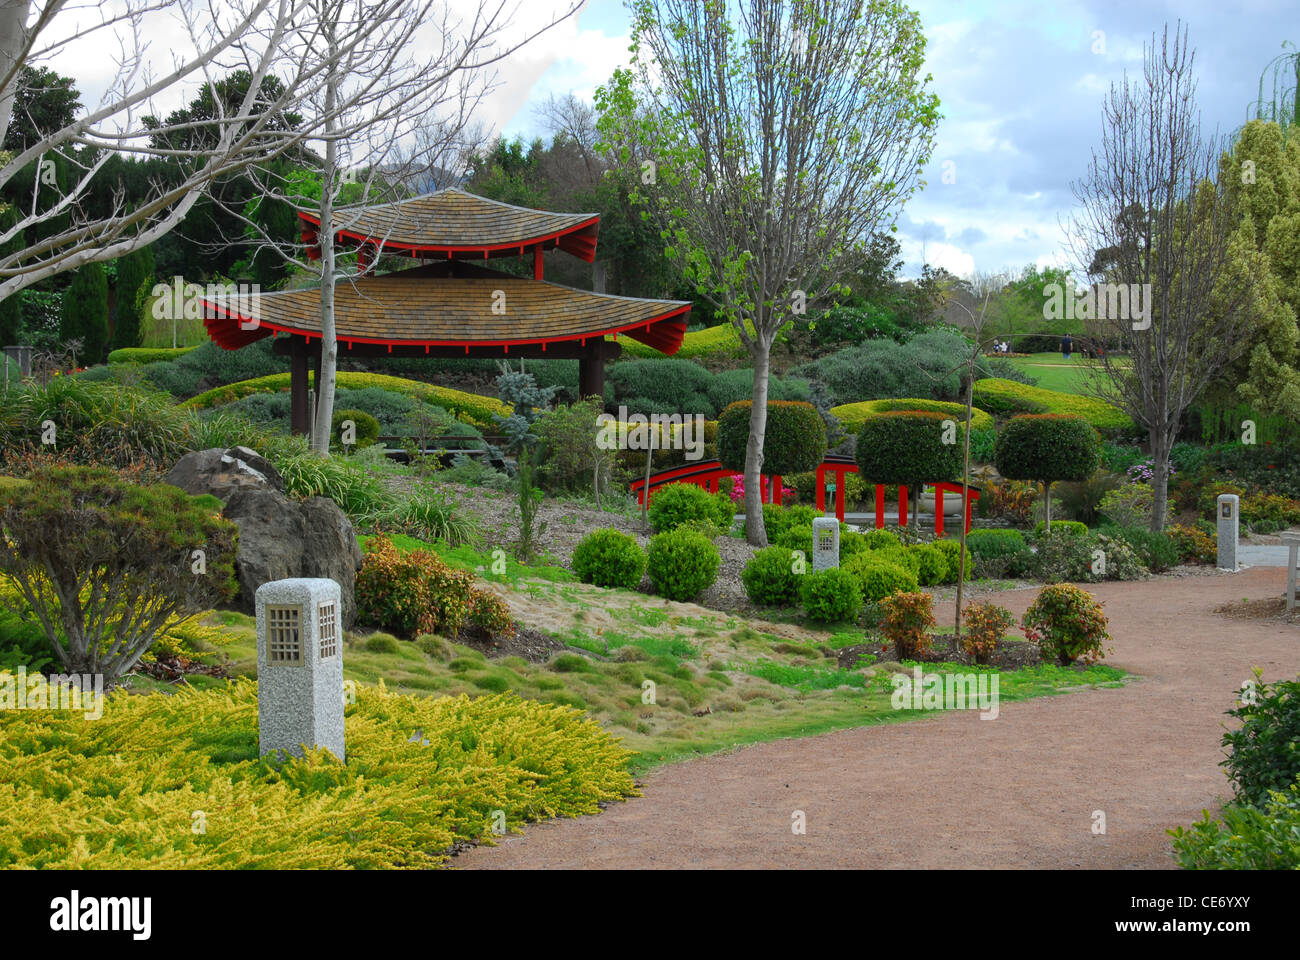 A Scene From A Japanese Garden New South Wales Australia Stock Photo Alamy